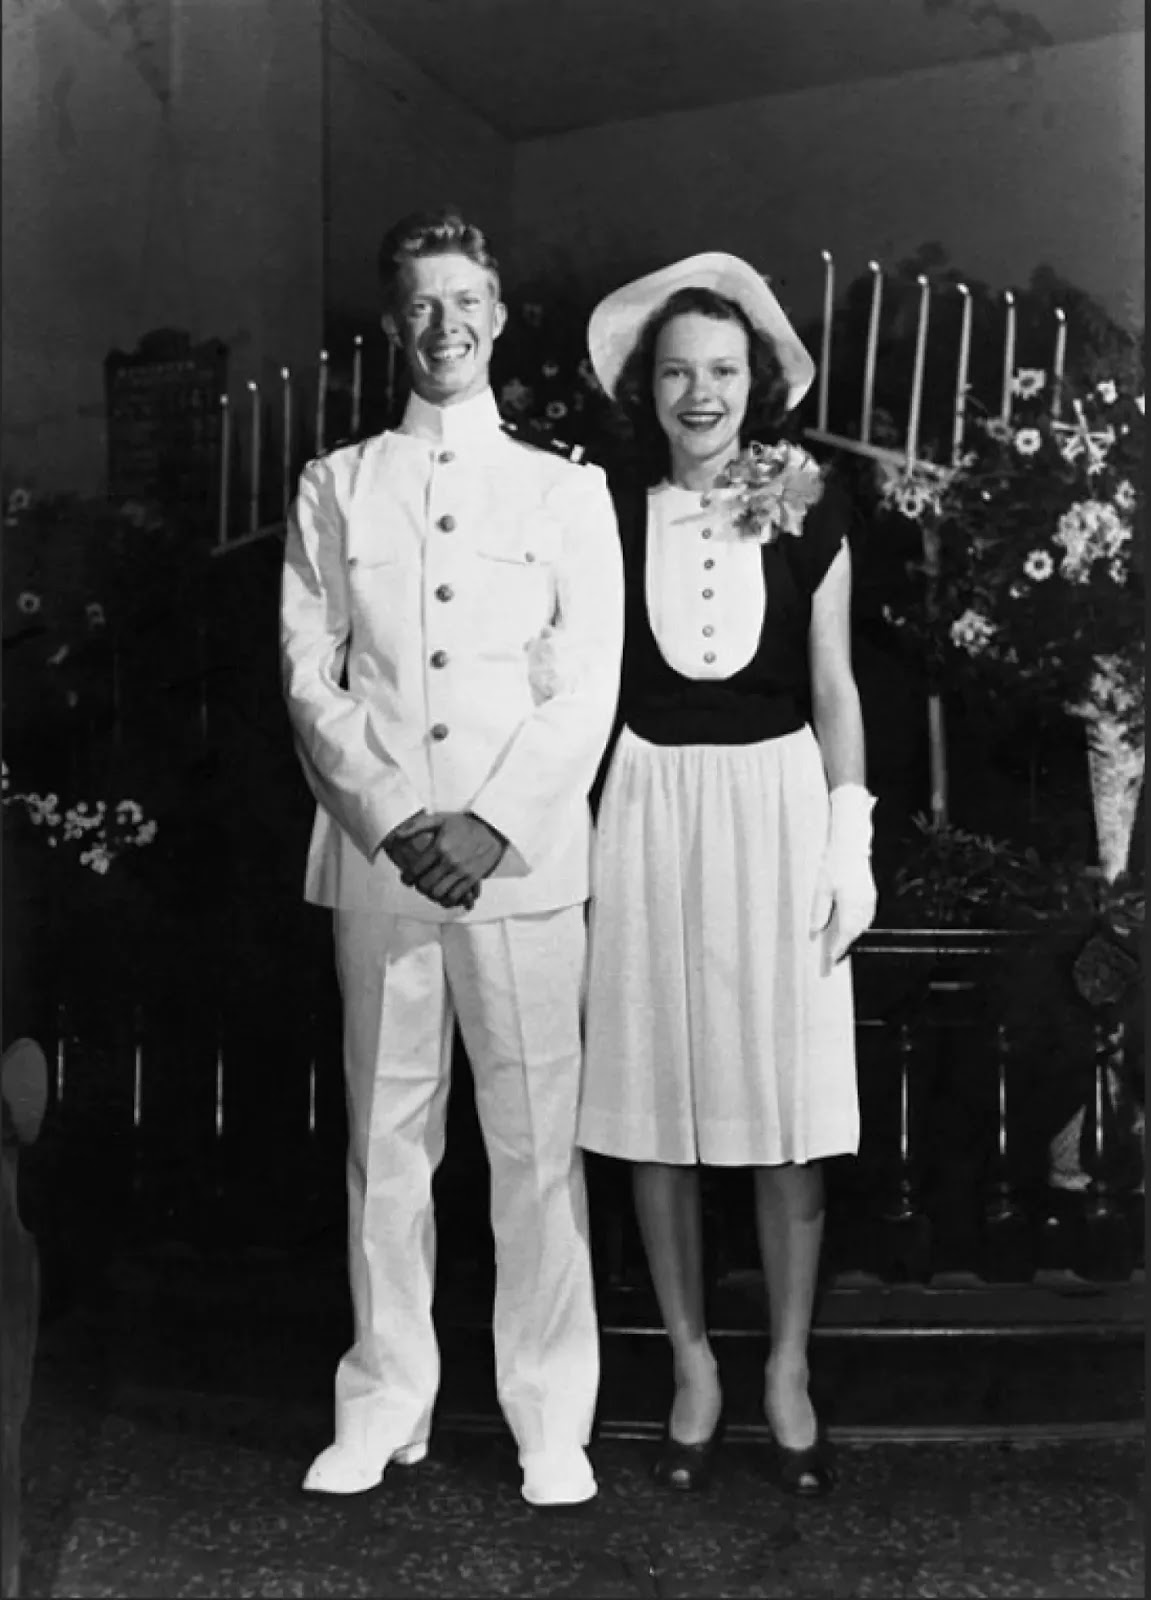 Jimmy and Rosalynn Carter on their wedding day in 1946